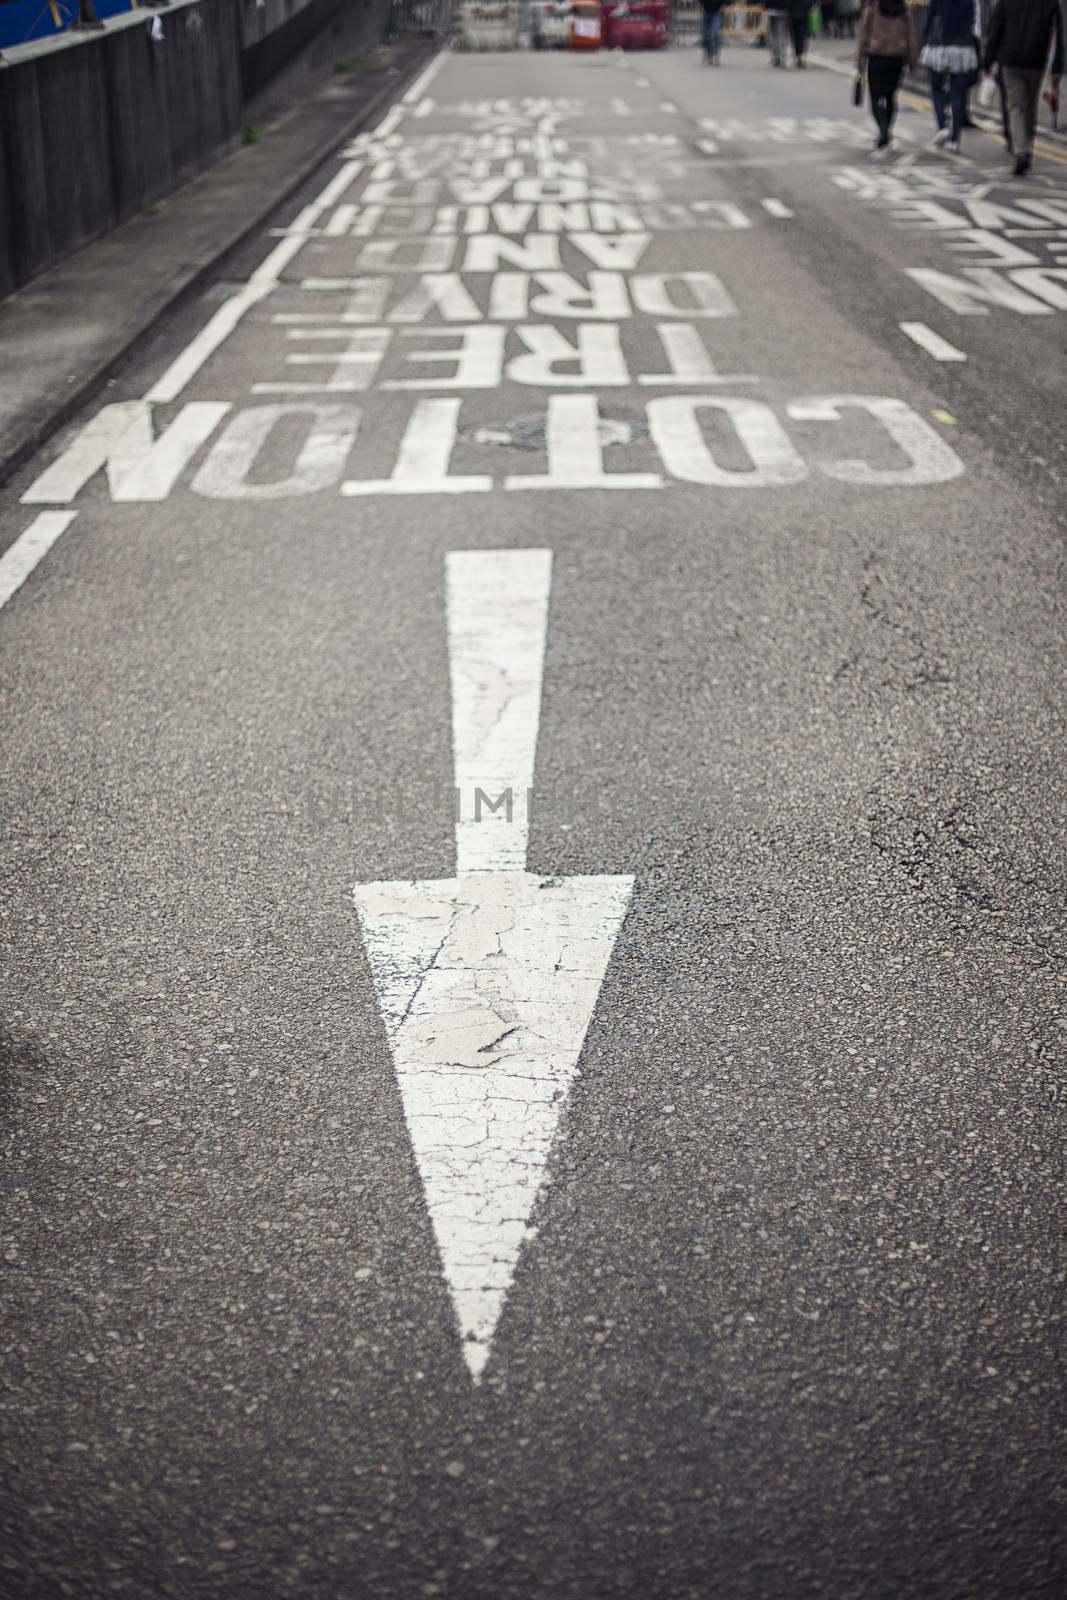 Road markings with arrow on asphalt. Travel and transportation concepts